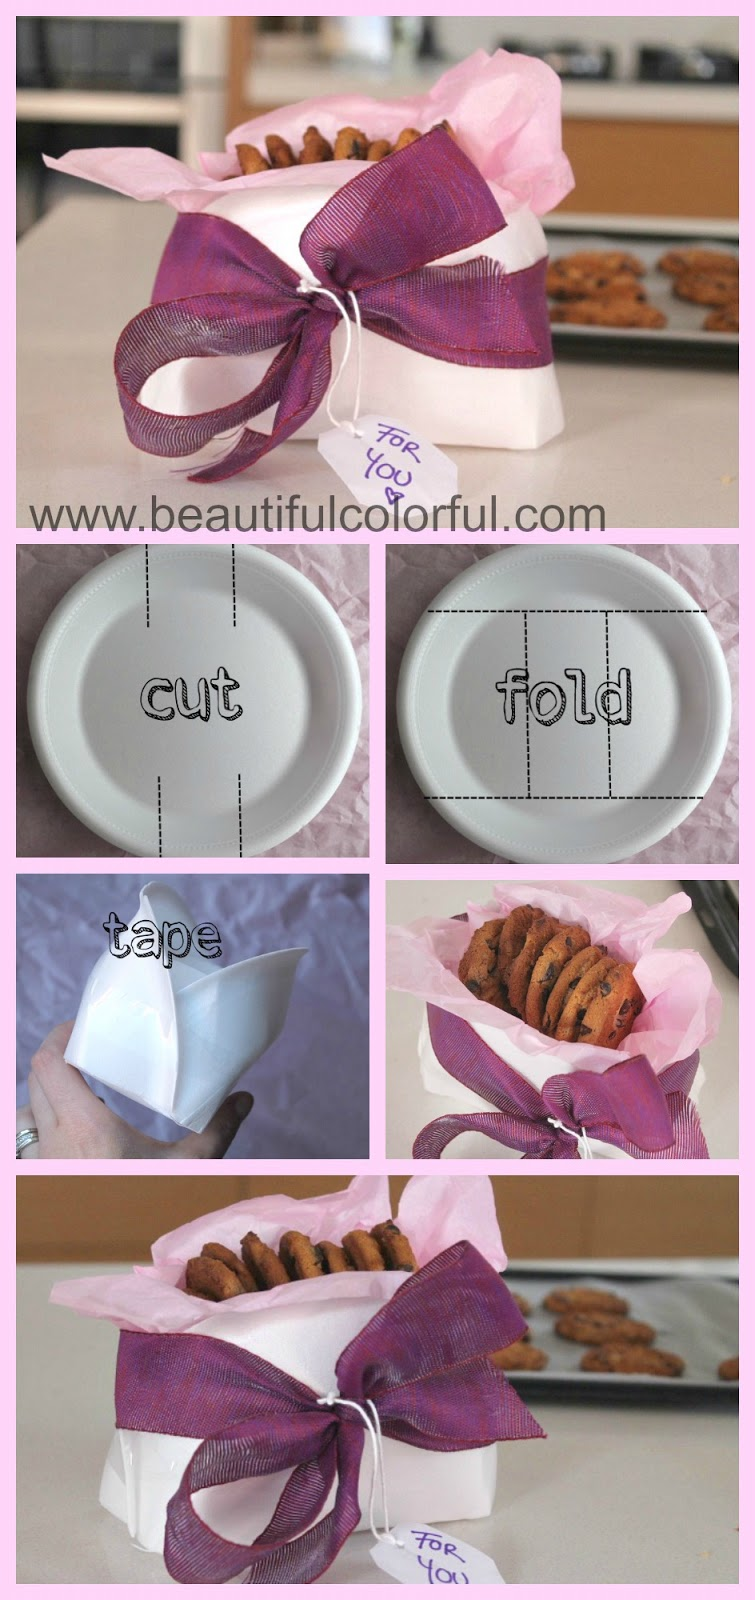 paper plate cookie container - easy diy crafts paper plates cookies baked goods